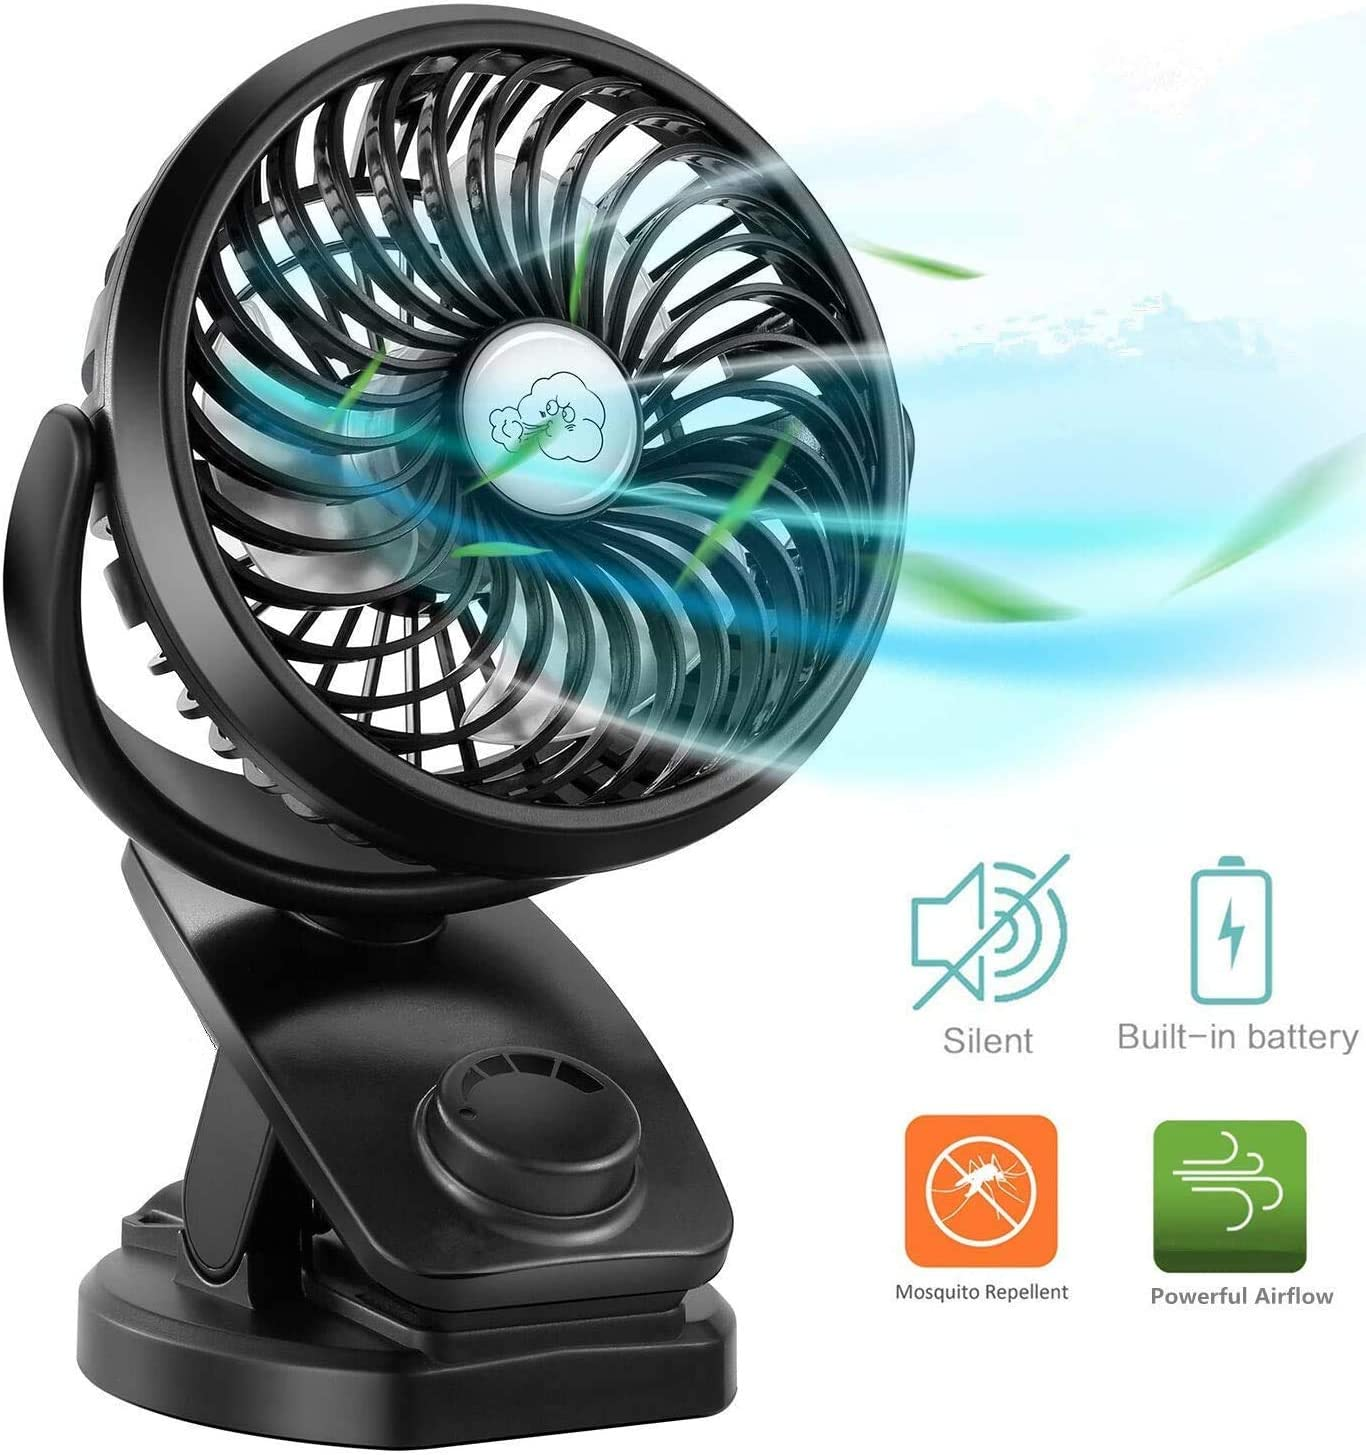 Blue and White//No Battery Handheld Fan,2pcs Mini Fan Portable Small Personal Ventilador Cooling Fan for Home Office Outdoor Travel